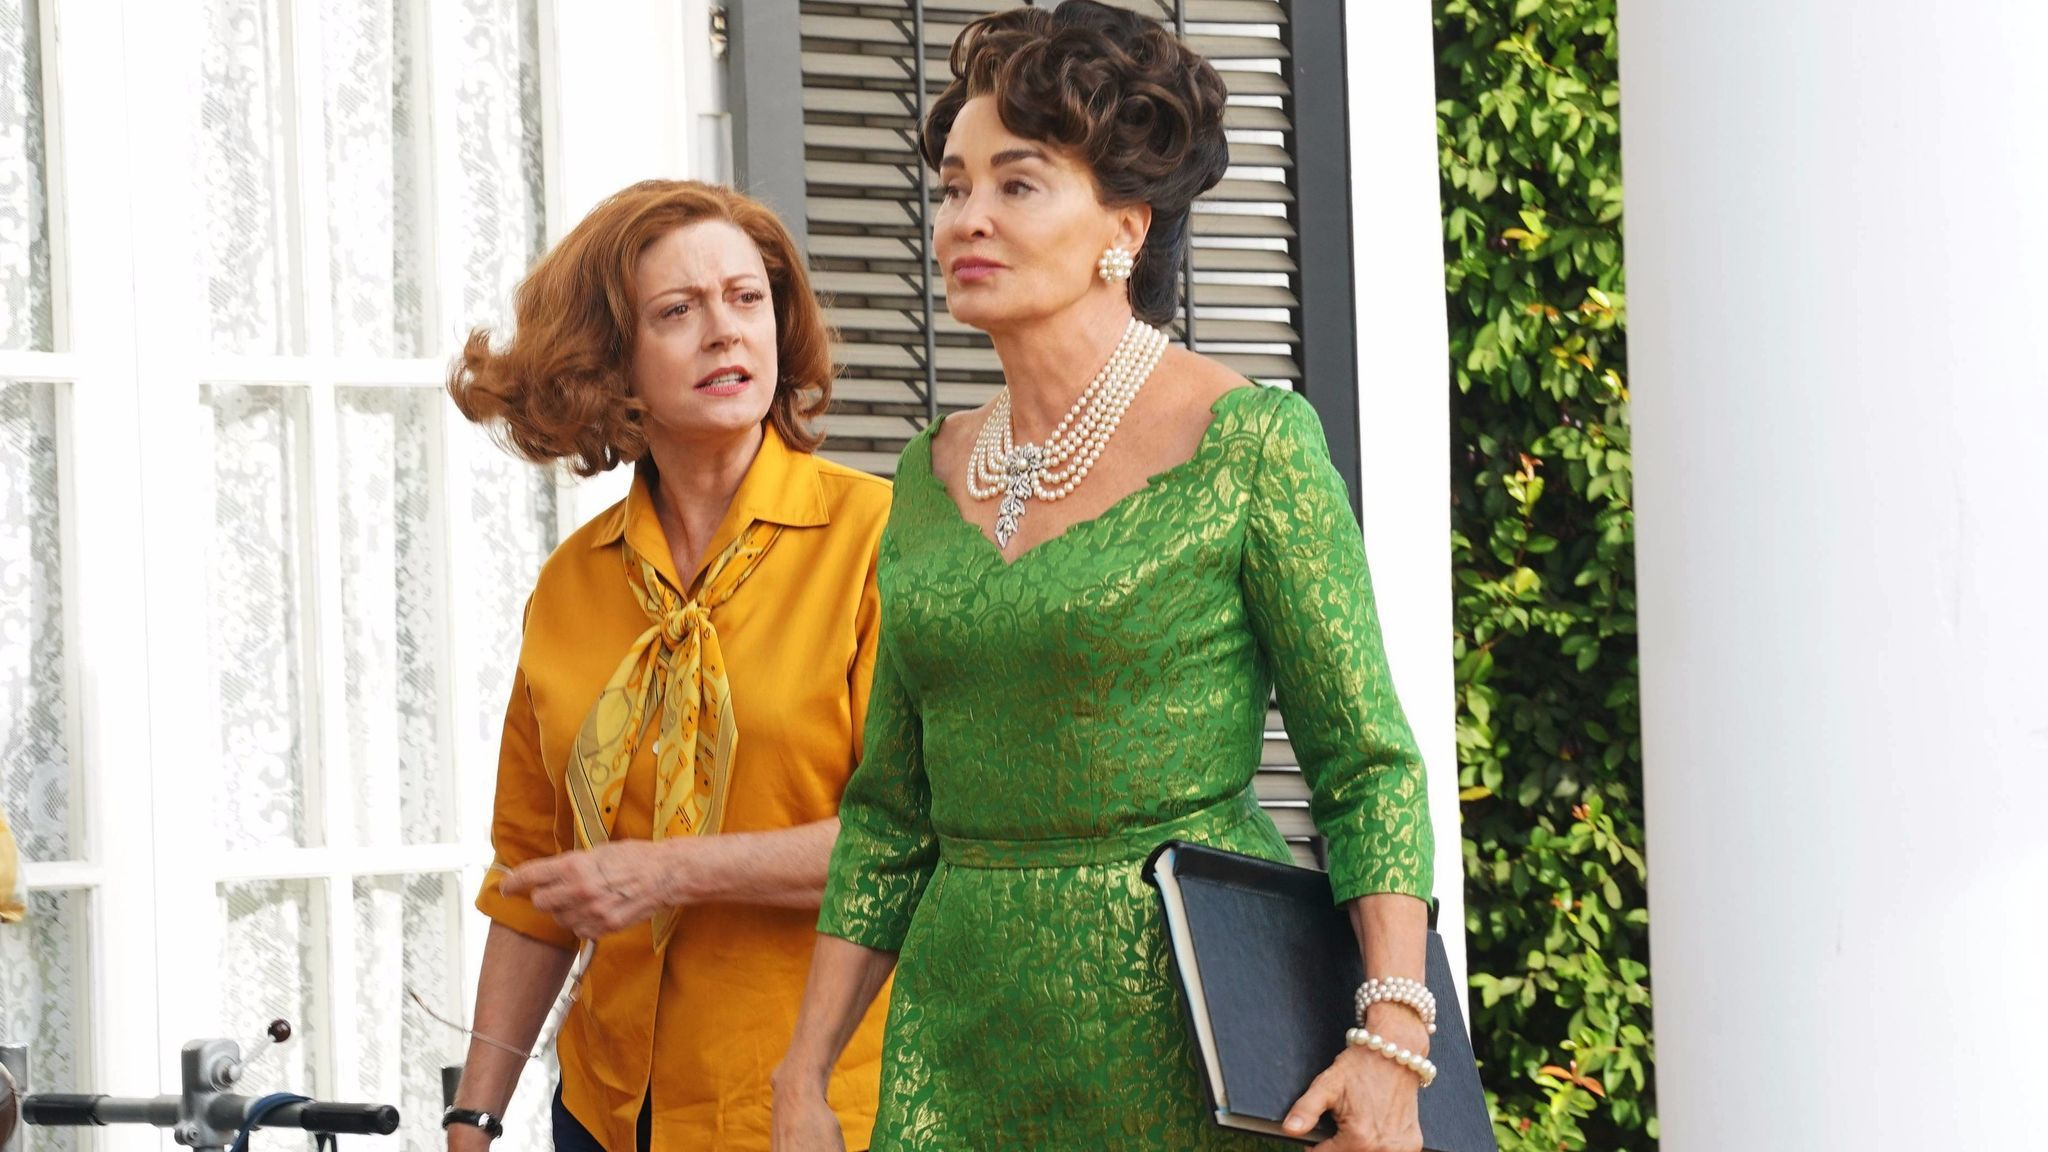 Susan Sarandon as Bette Davis, left, and Jessica Lange as Joan Crawford in a scene from FX's